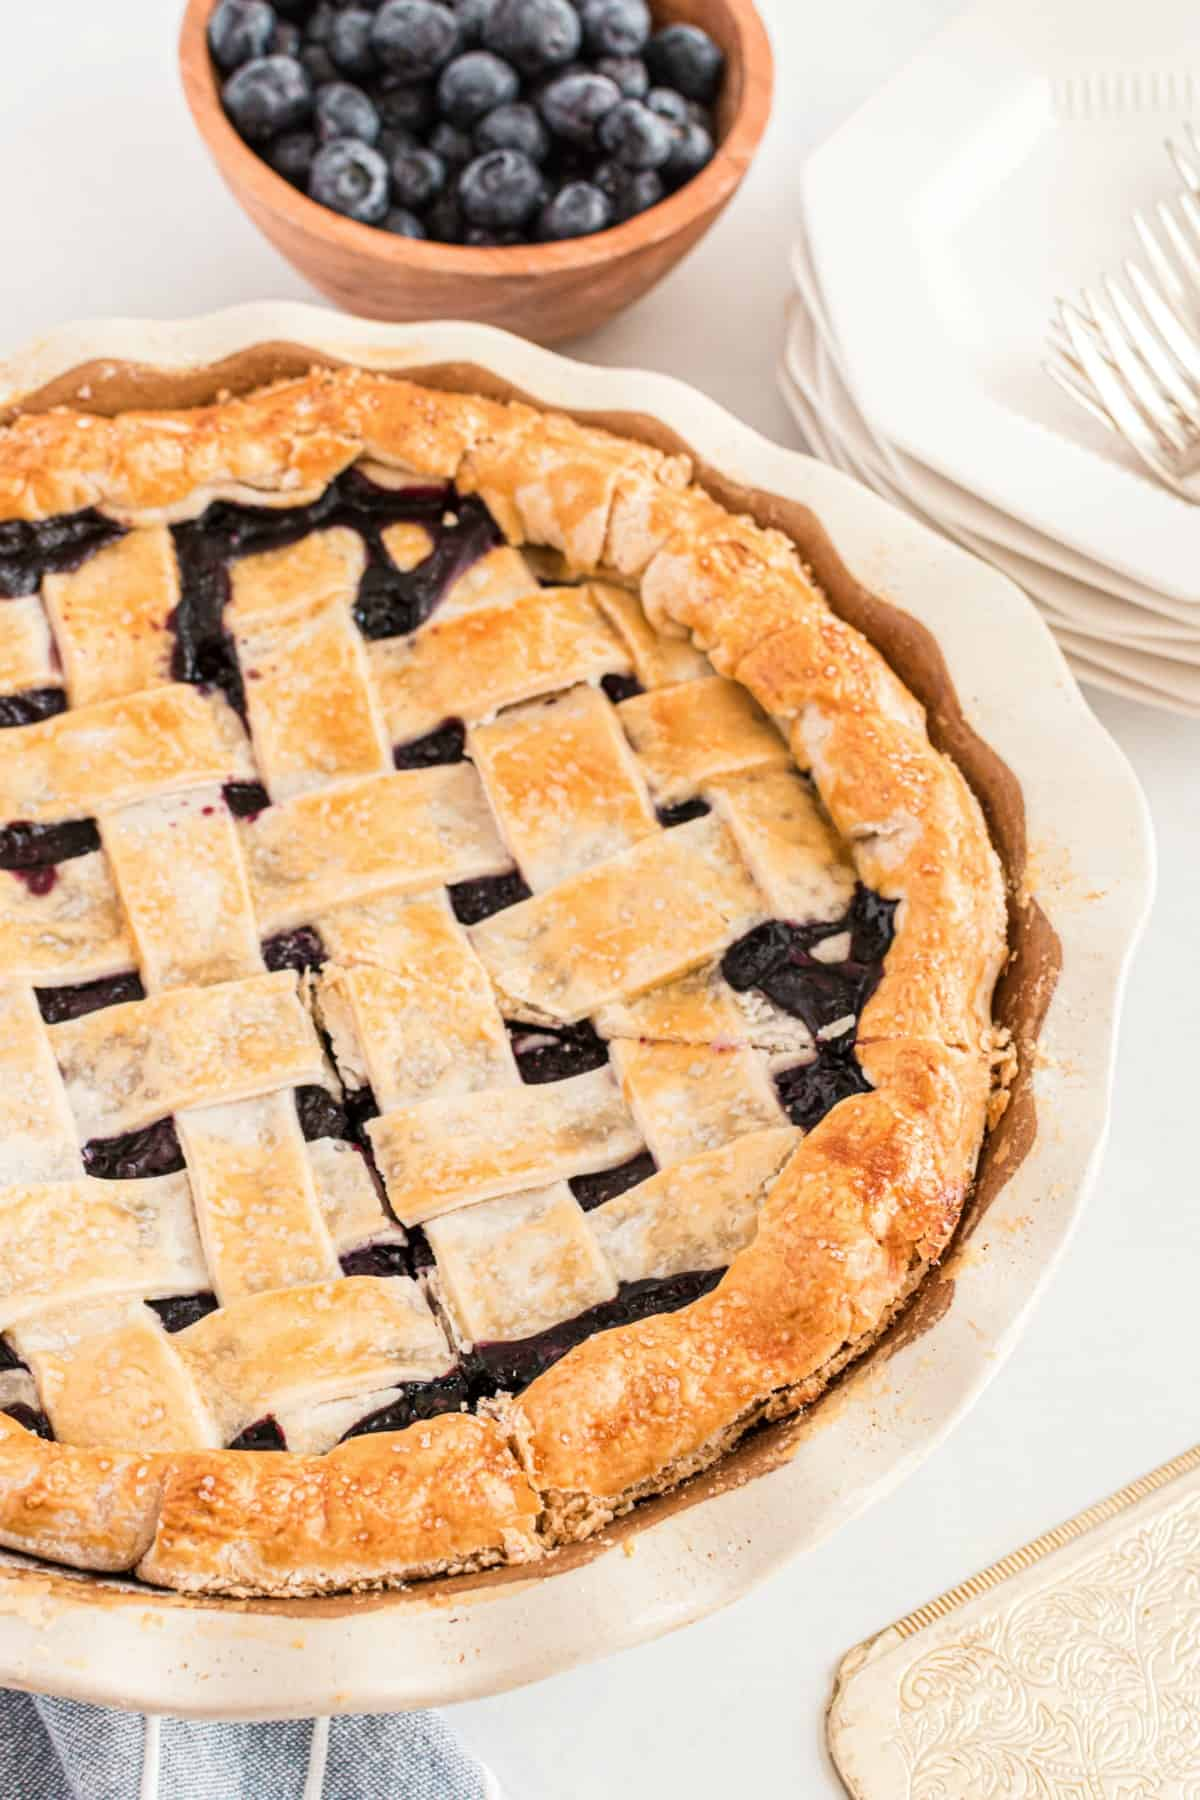 Blueberry pie with lattice crust in a white pie plate.